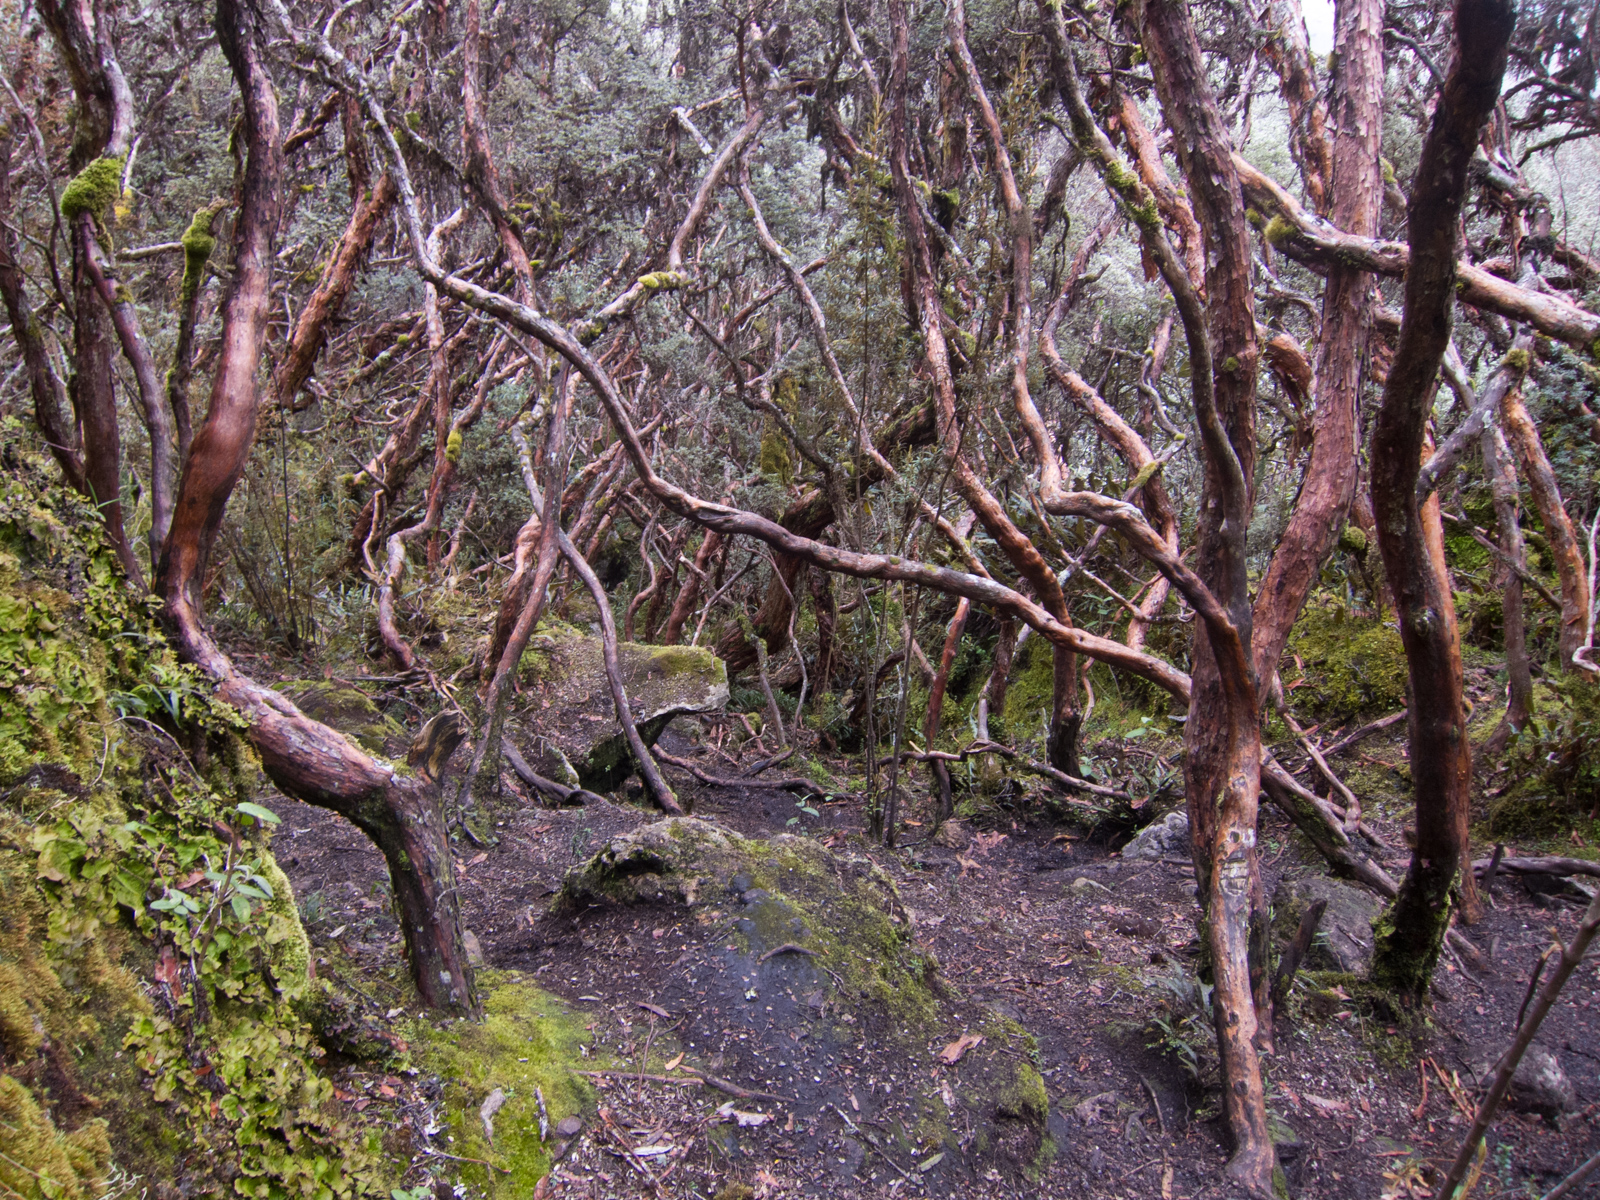 """The quinua """"paper tree"""" forest had a mystical Lord of the Rings feel to it"""